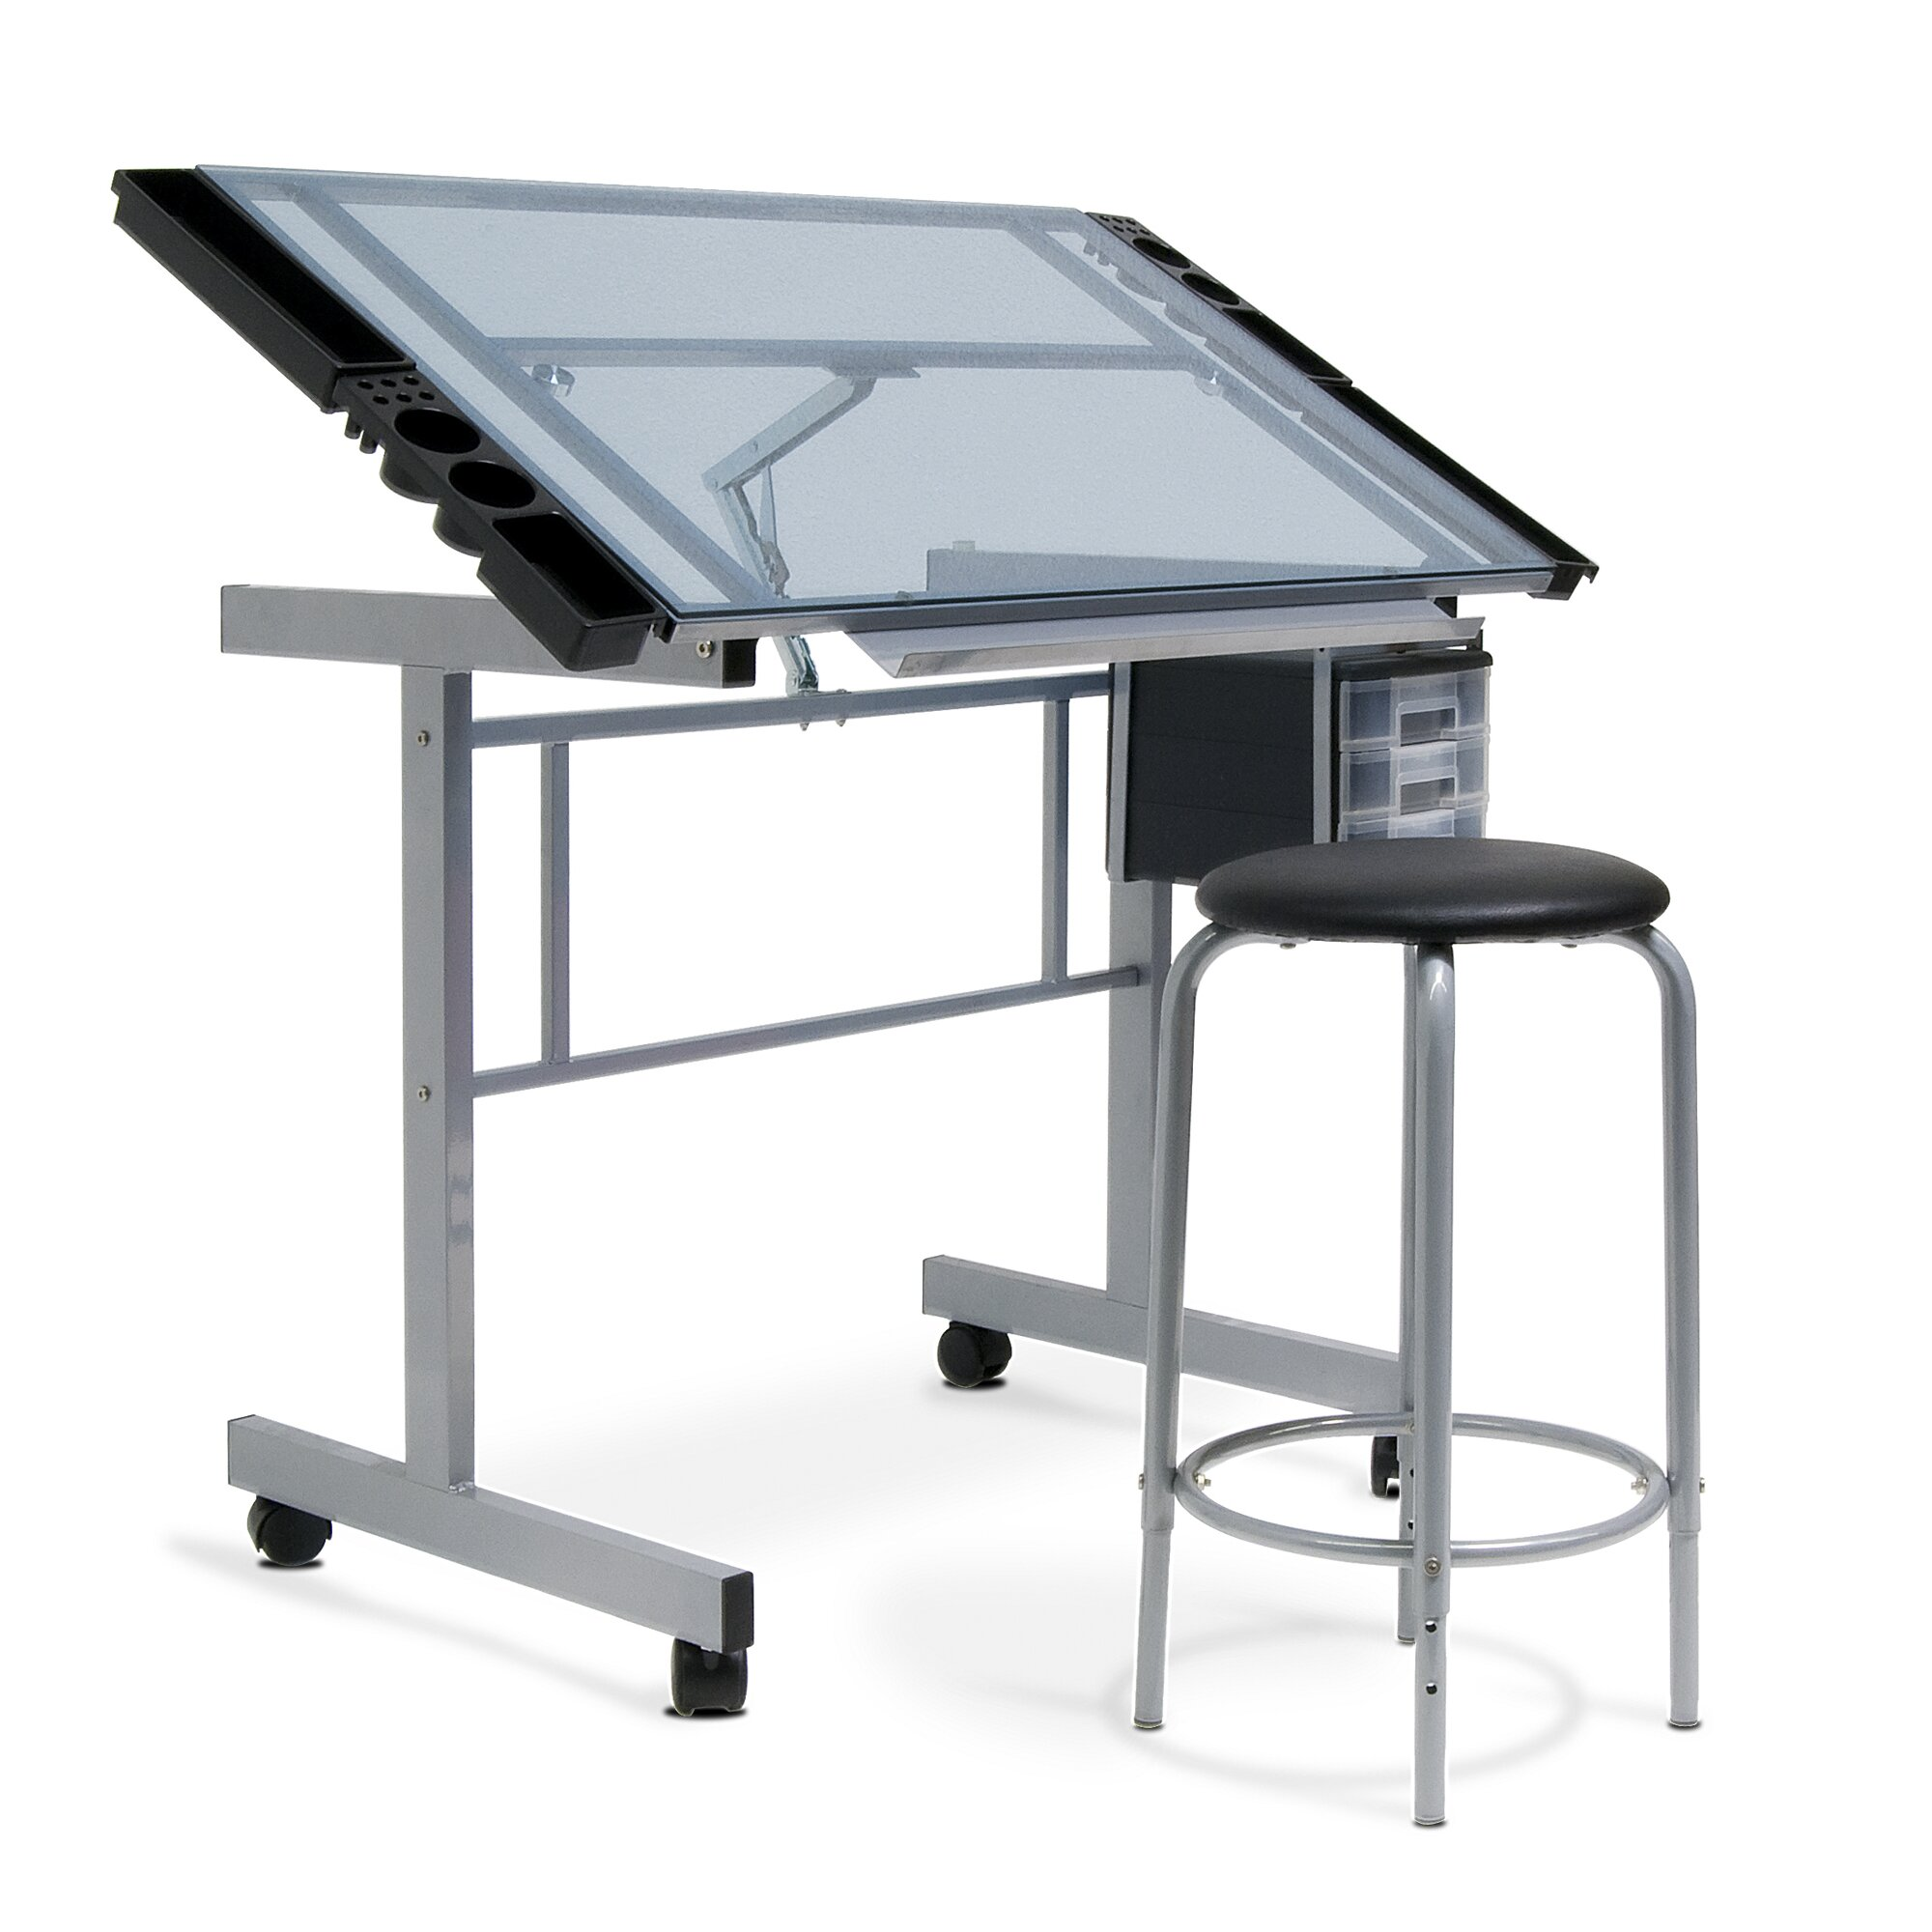 Studio Design Drafting Table shop all studio designs 26999 Vision 2 Piece Craft Station And Glass Drafting Table With Stool